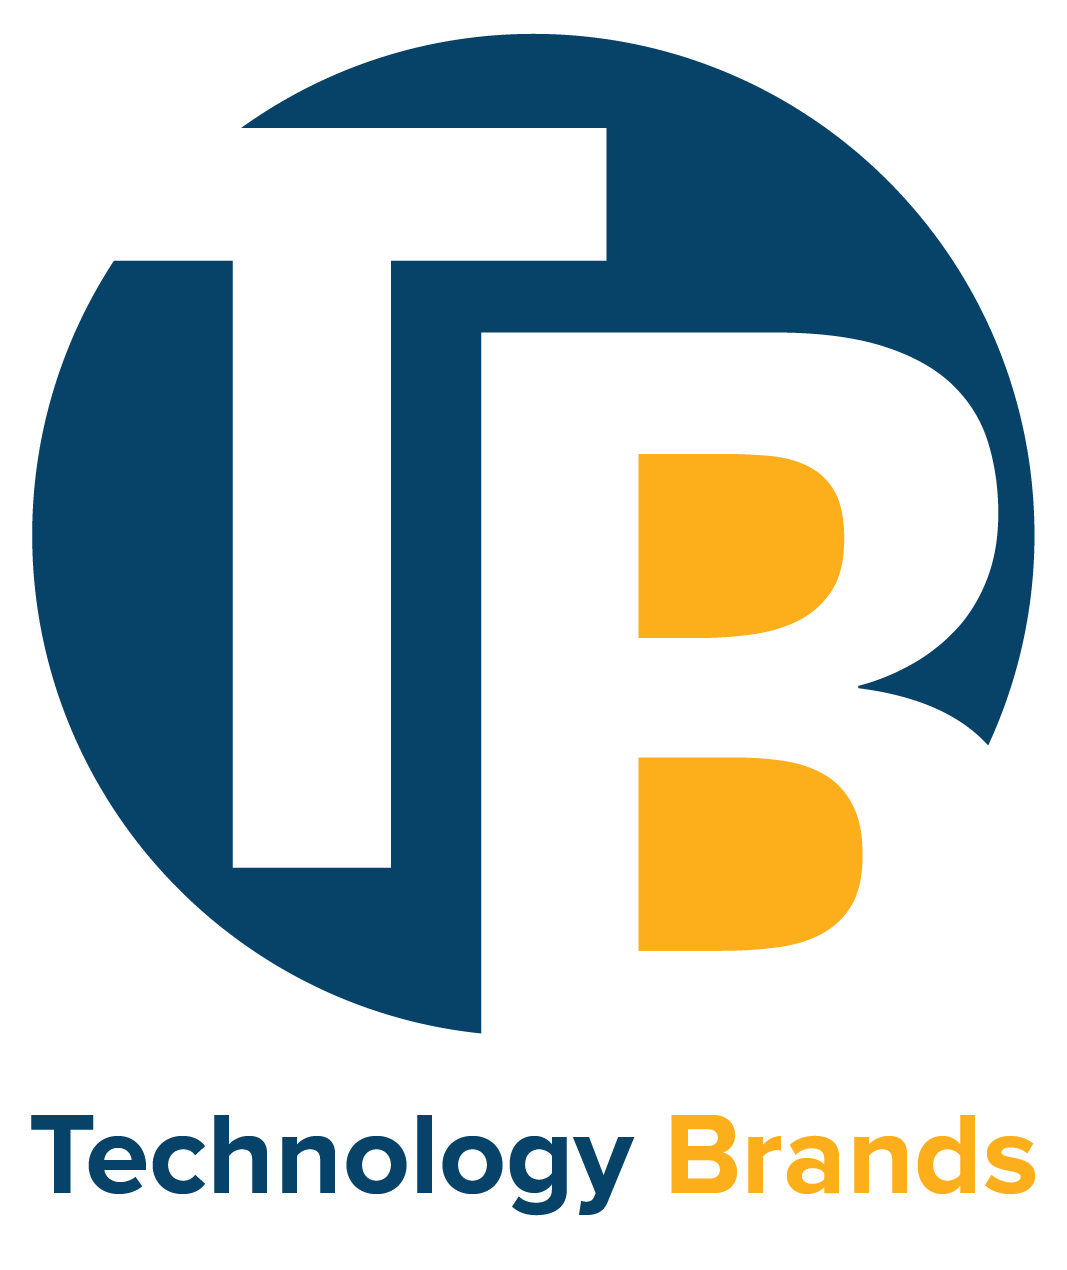 Technology Brands - Certification Training & IT Courses with Guaranteed ResultsVendor Logo